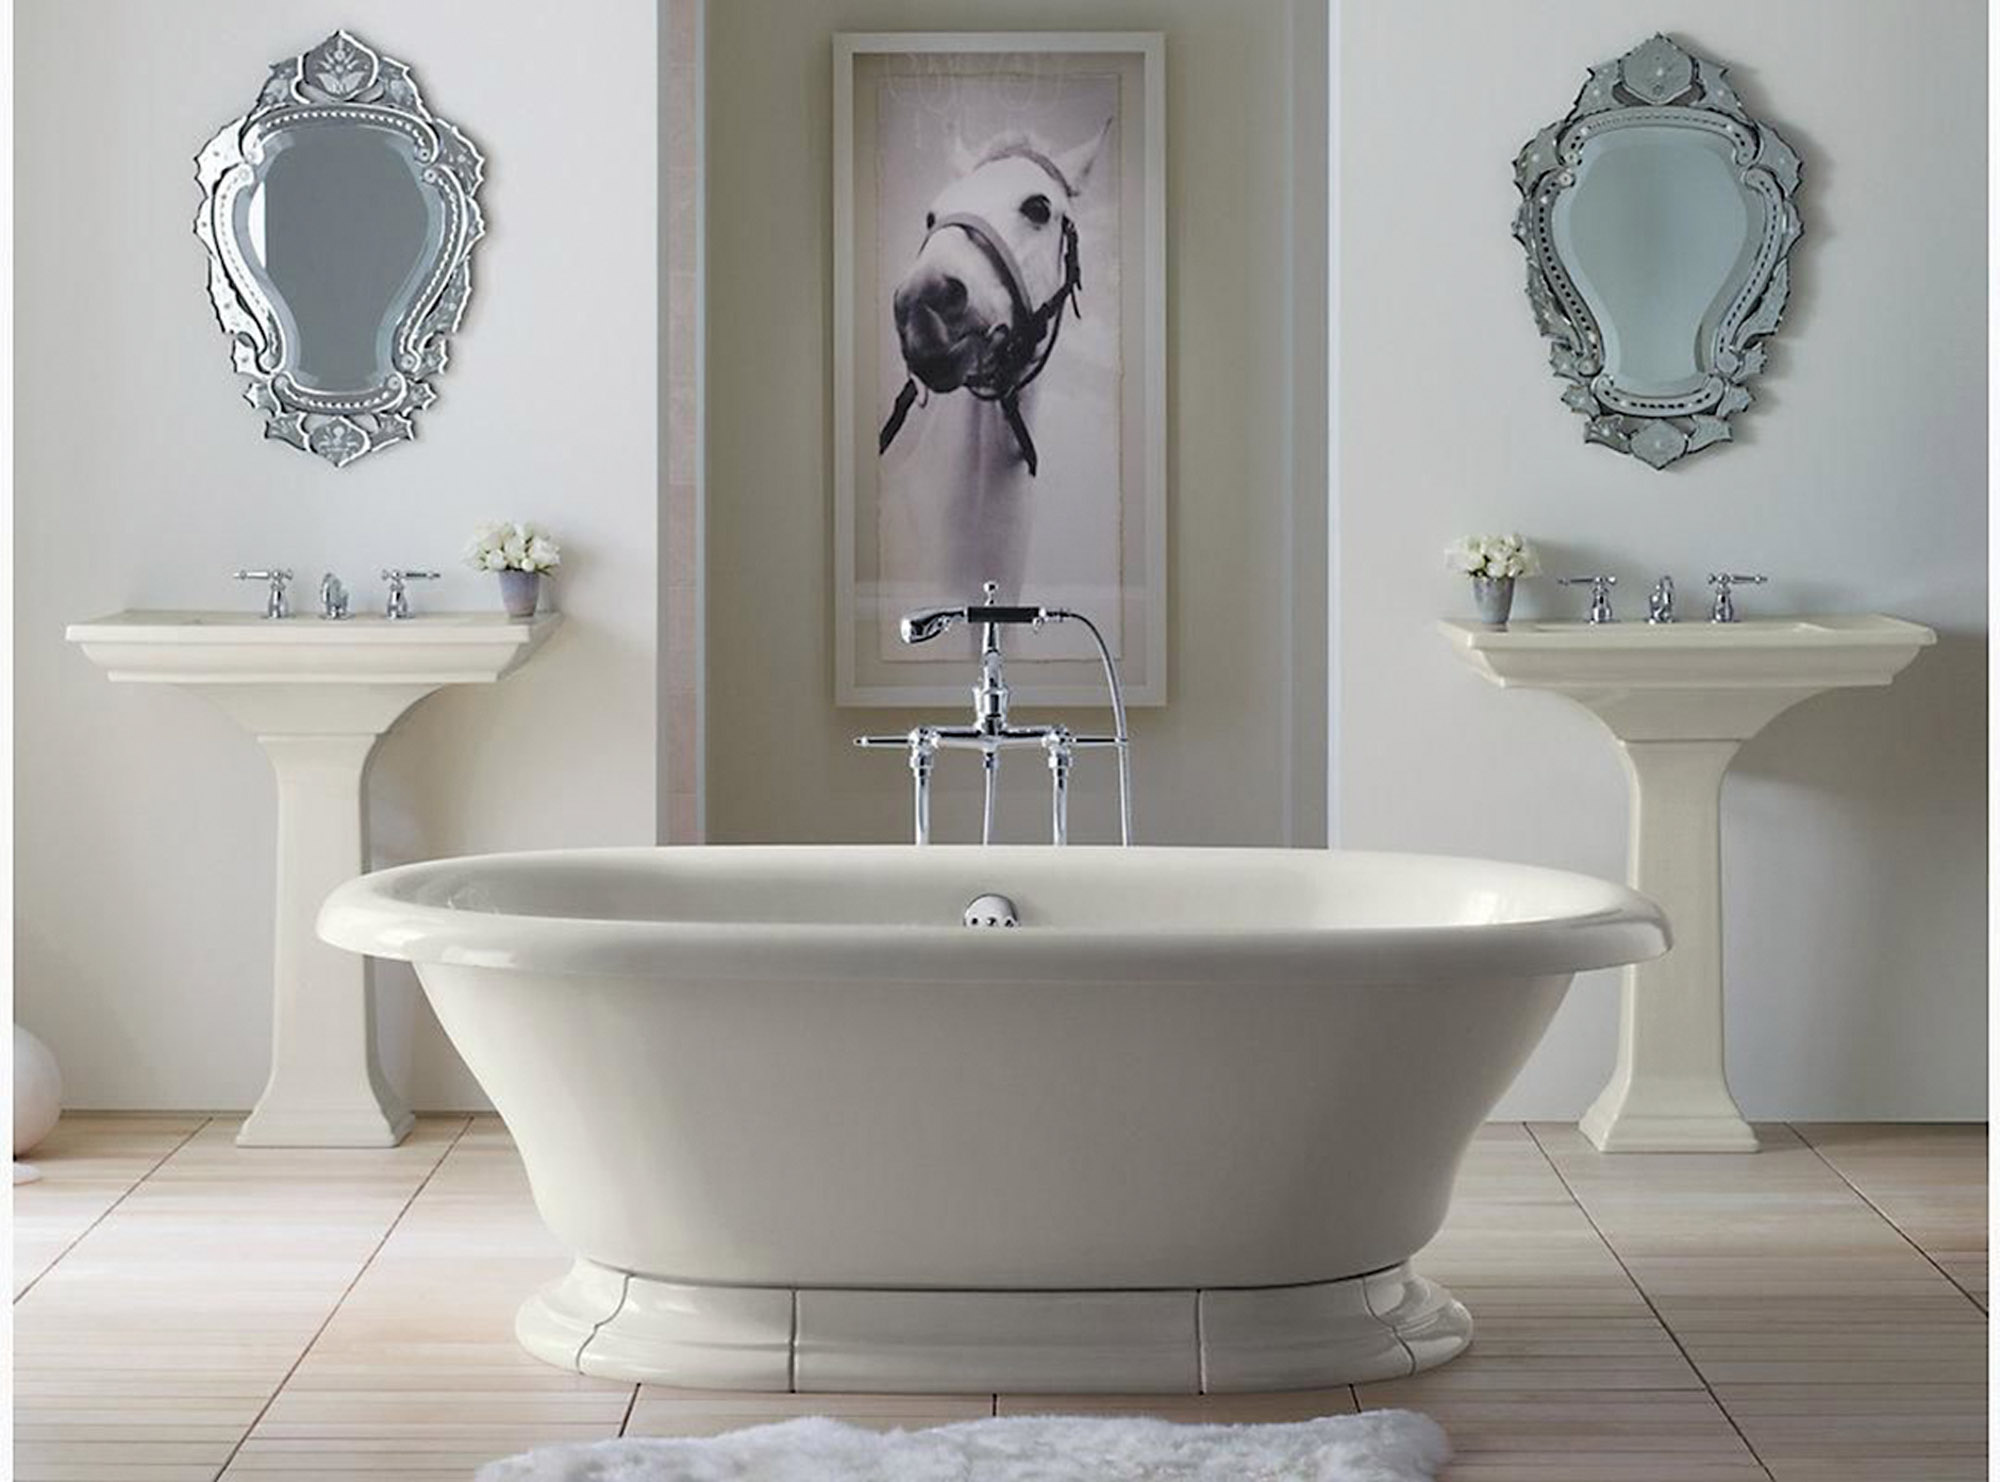 "Kohler's 'Vintage' 72"" x 42"" freestanding cast-iron tub"